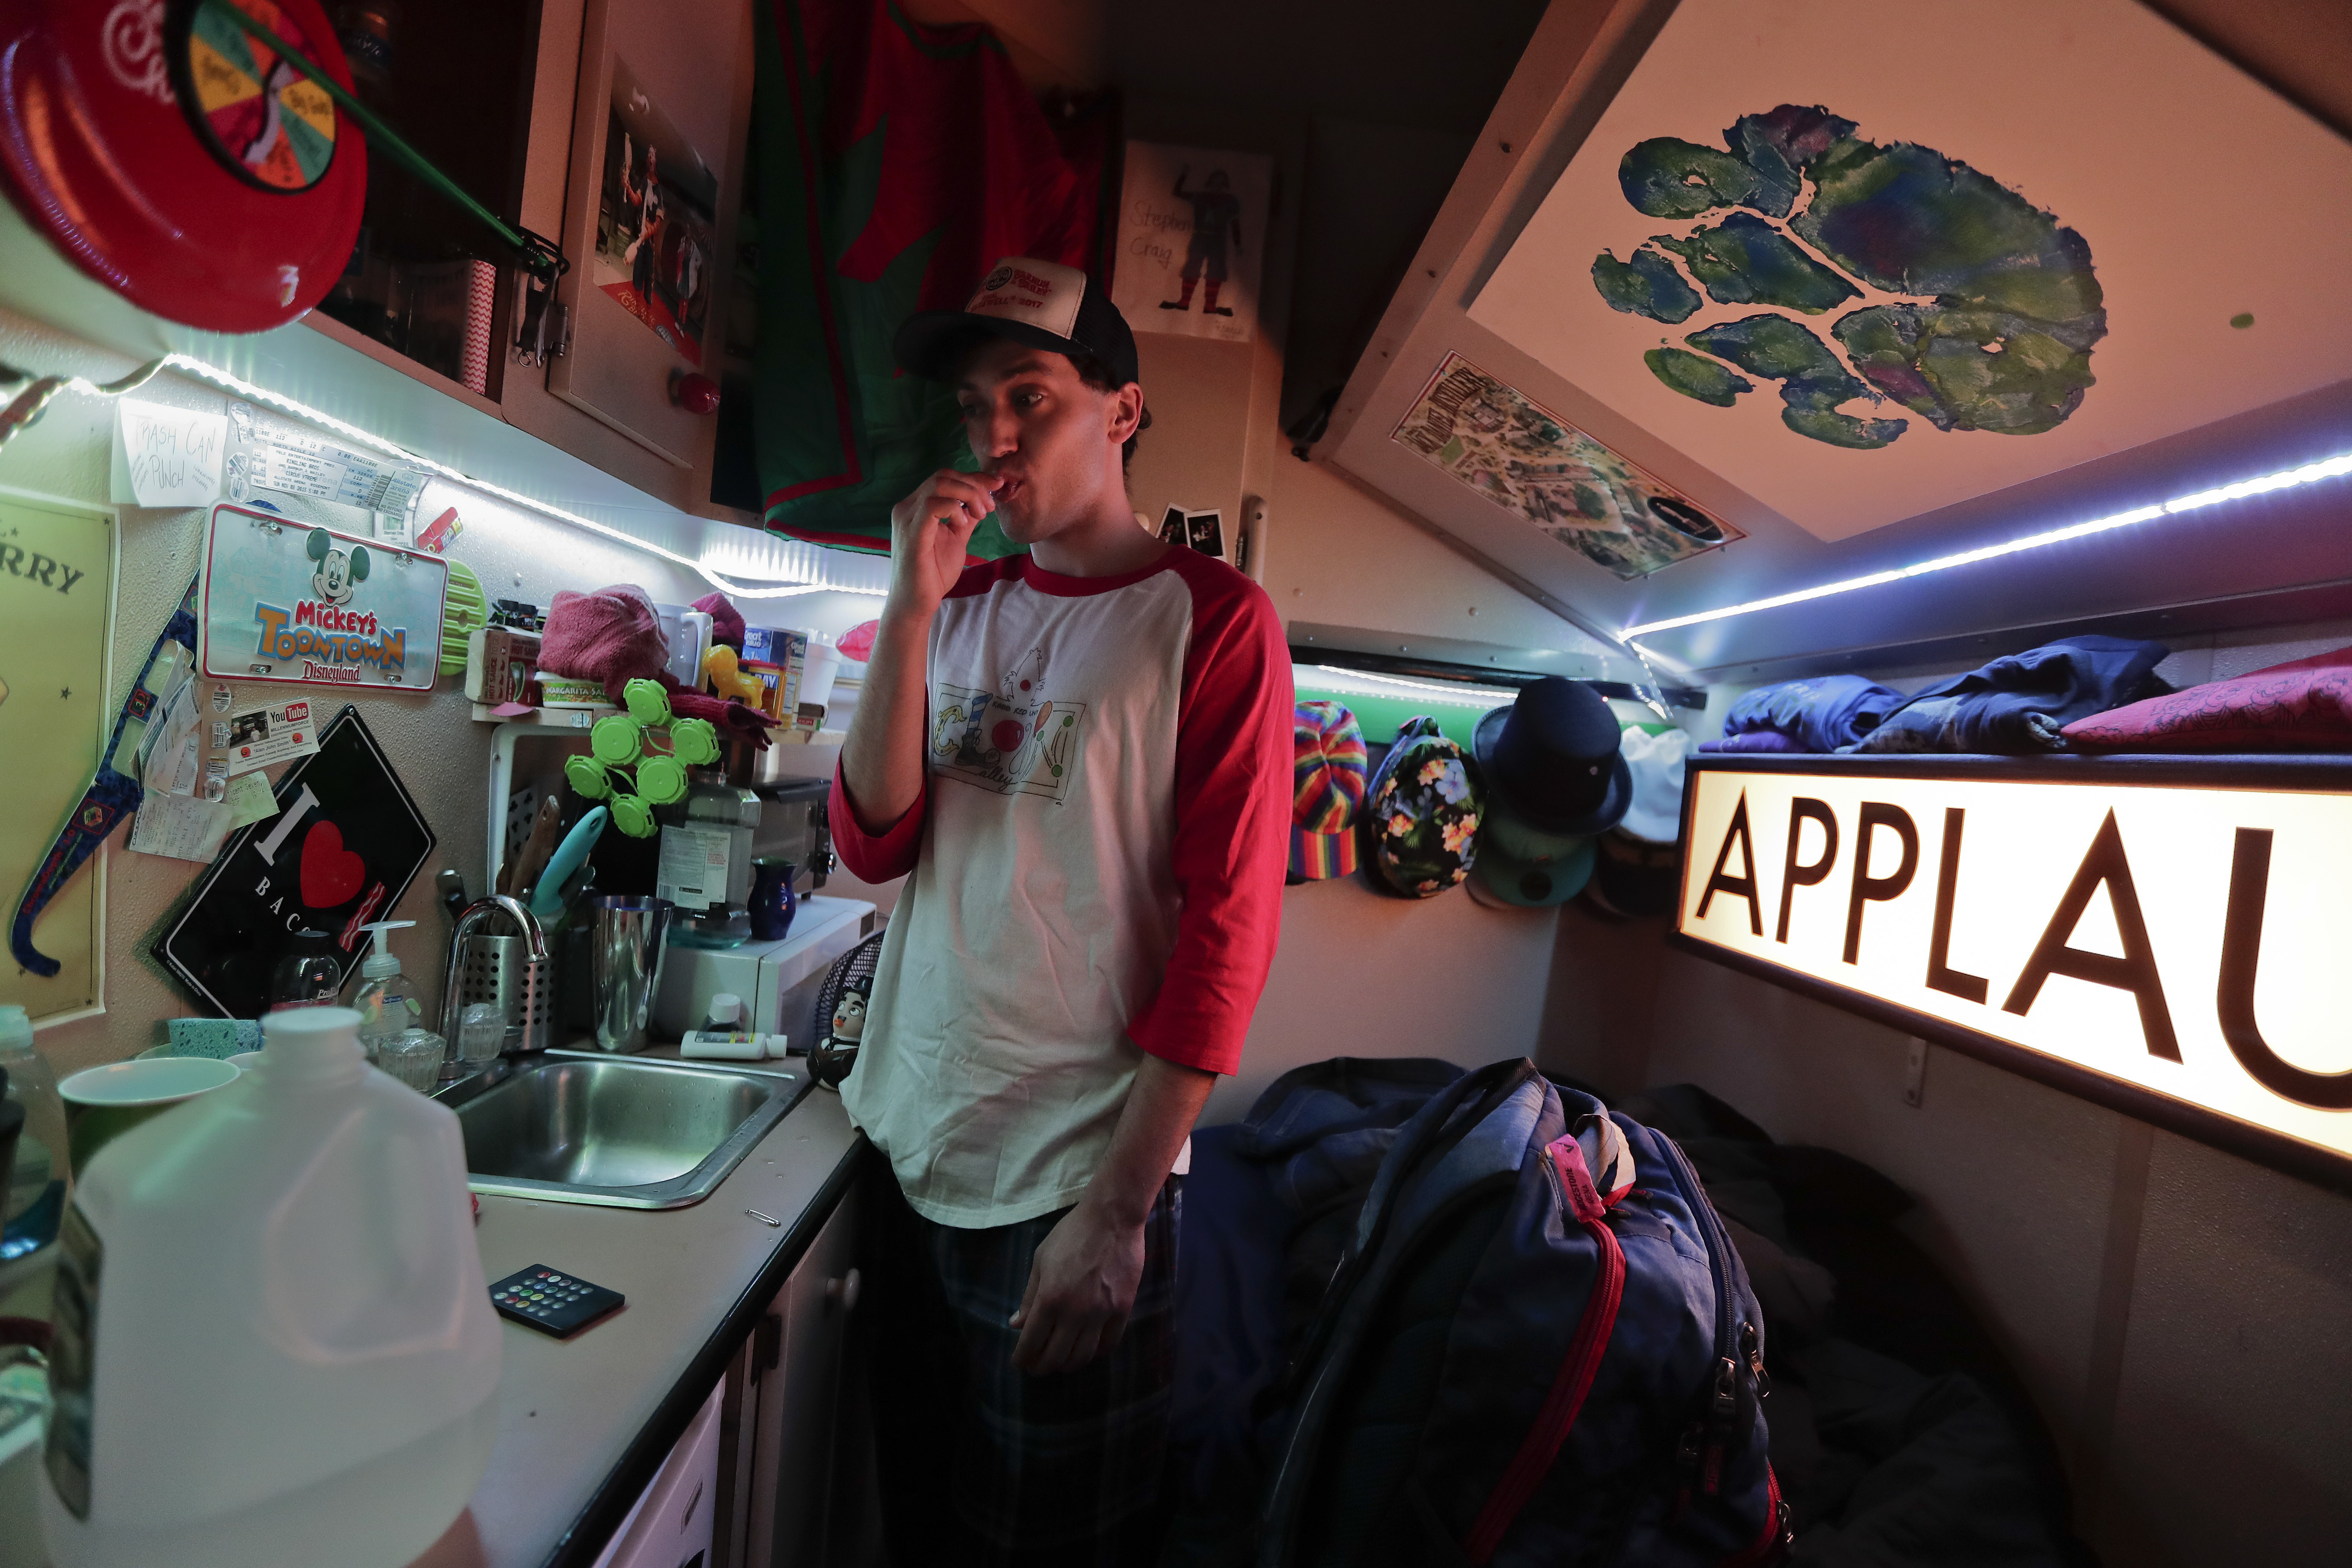 Ringling Bros. circus clown Stephen Craig brushes his teeth in his living compartment on the red unit's train before heading to the arena to perform in a show on May 4, 2017, in Providence, R.I. (Julie Jacobson/Associated Press)